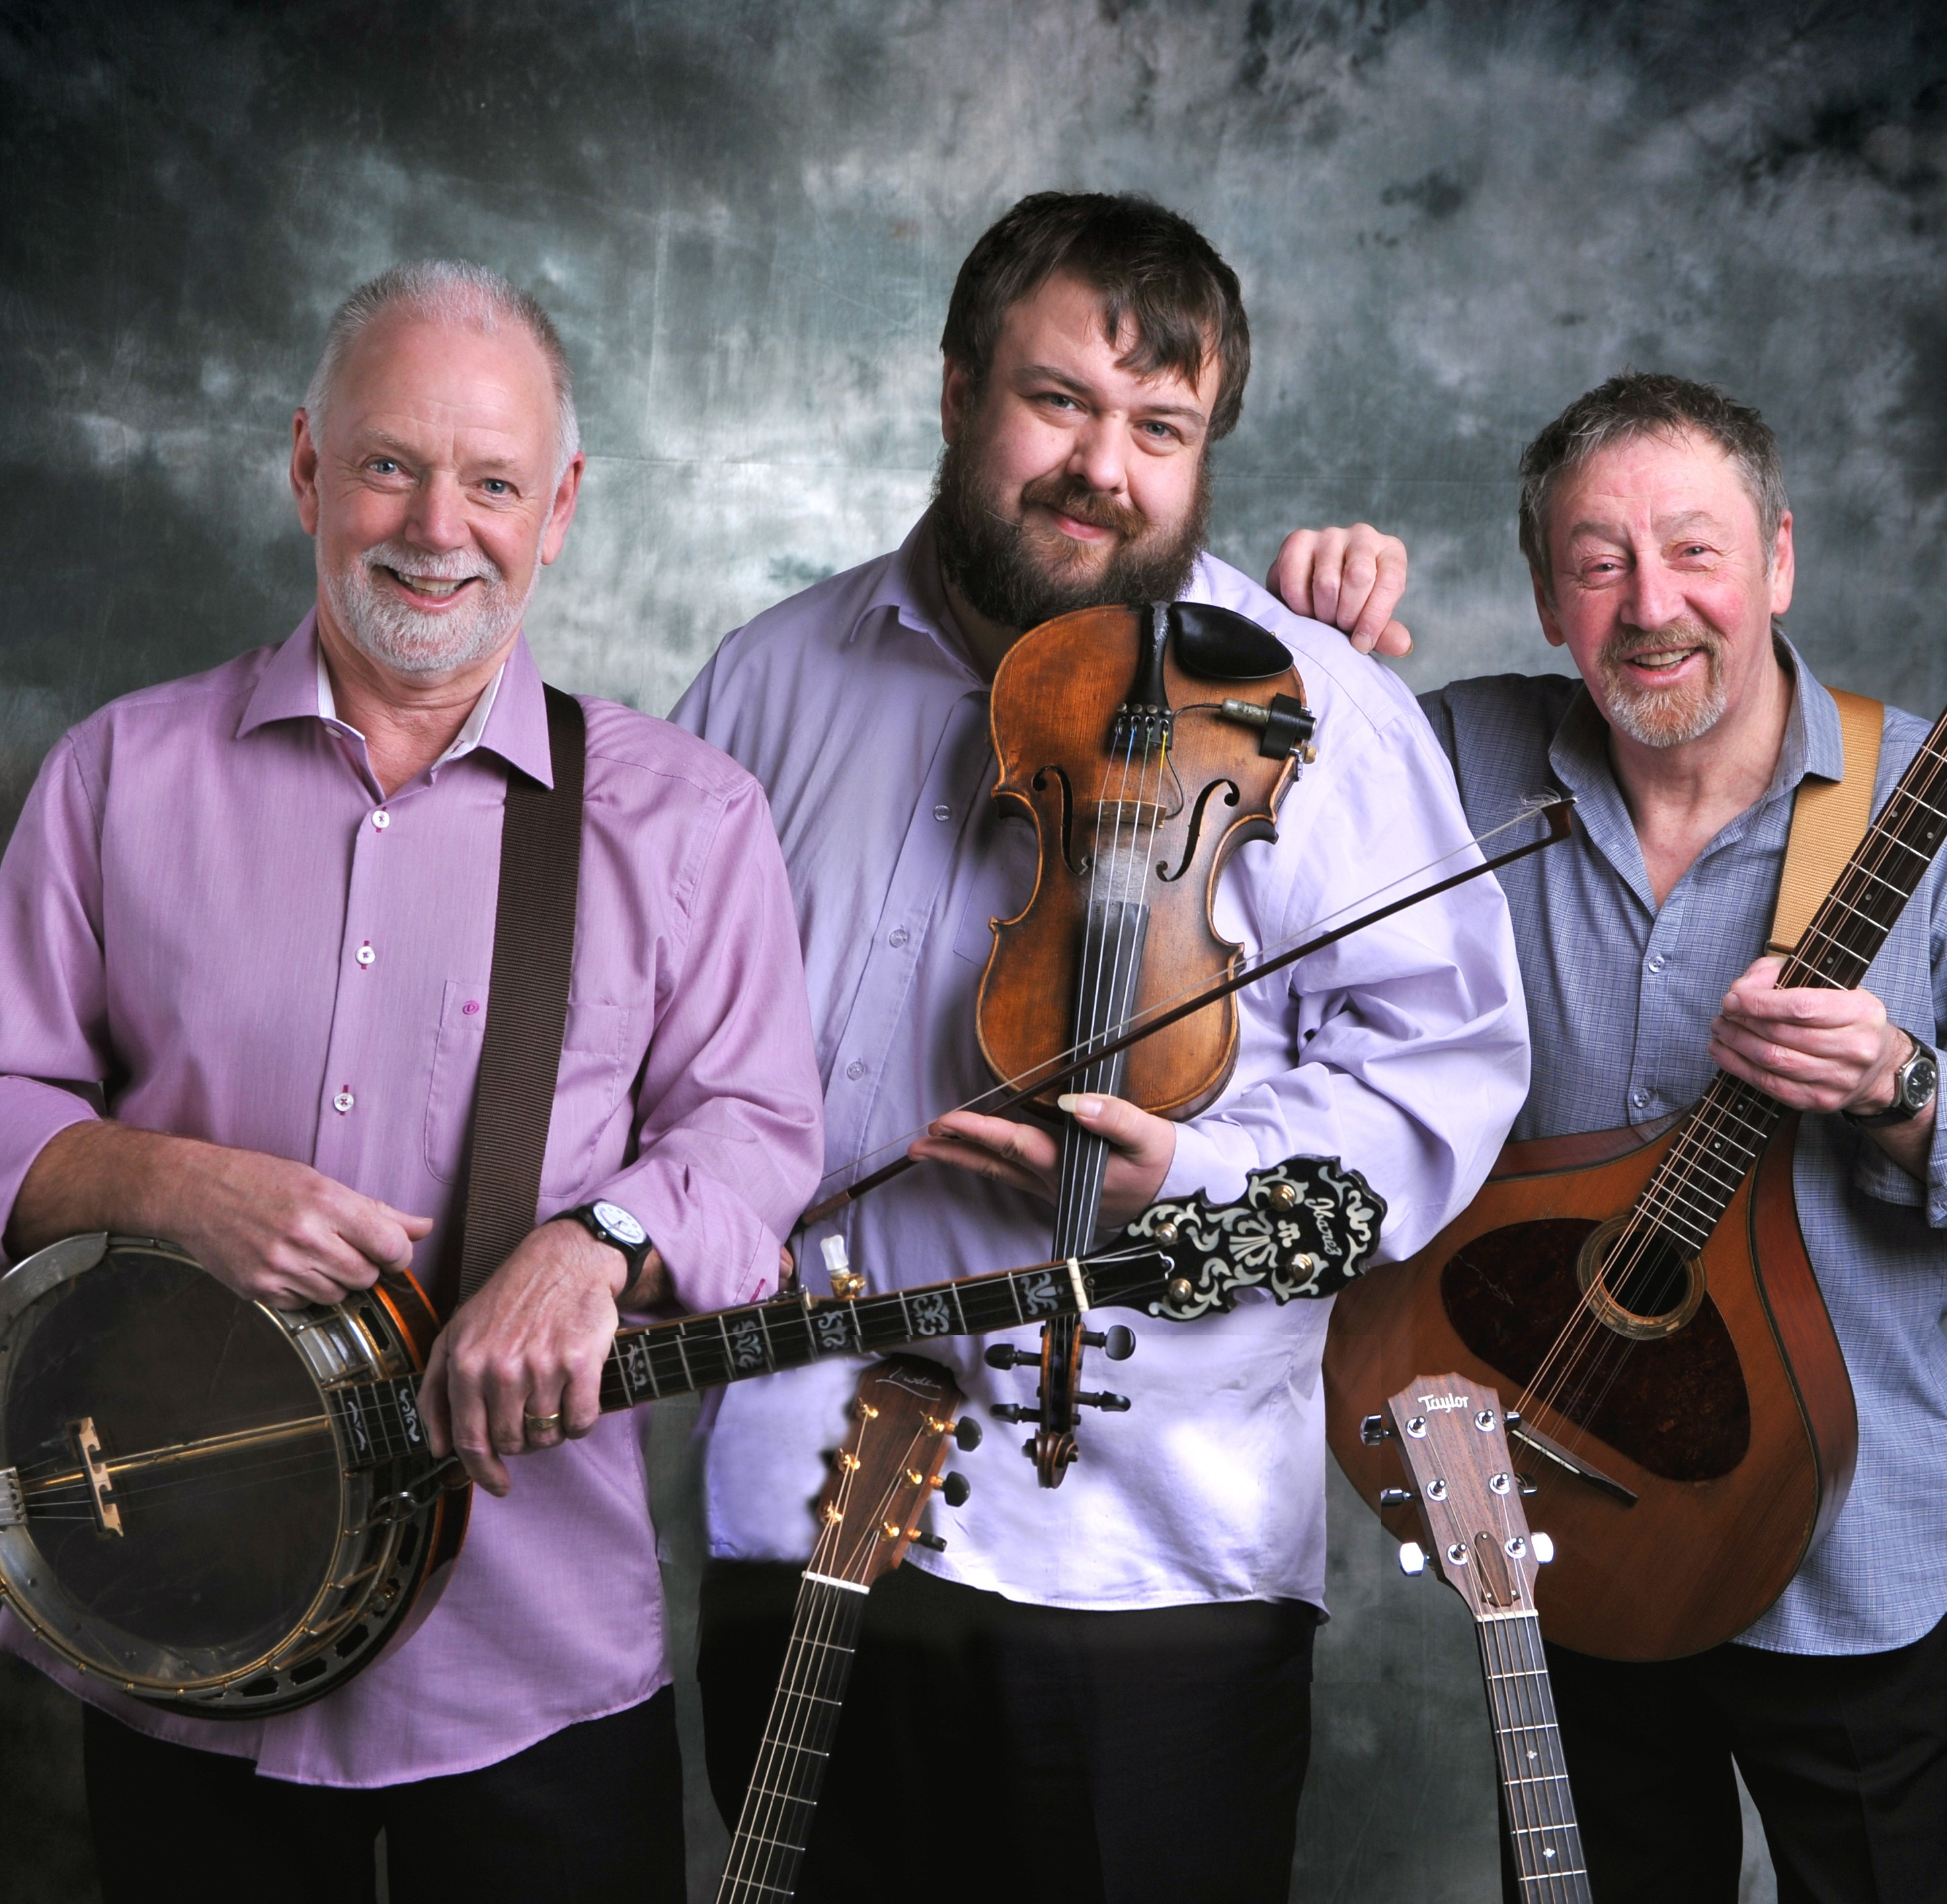 , Acclaimed folk group to perform at Garstang Library, Skem News - The Top Source for Skelmersdale News